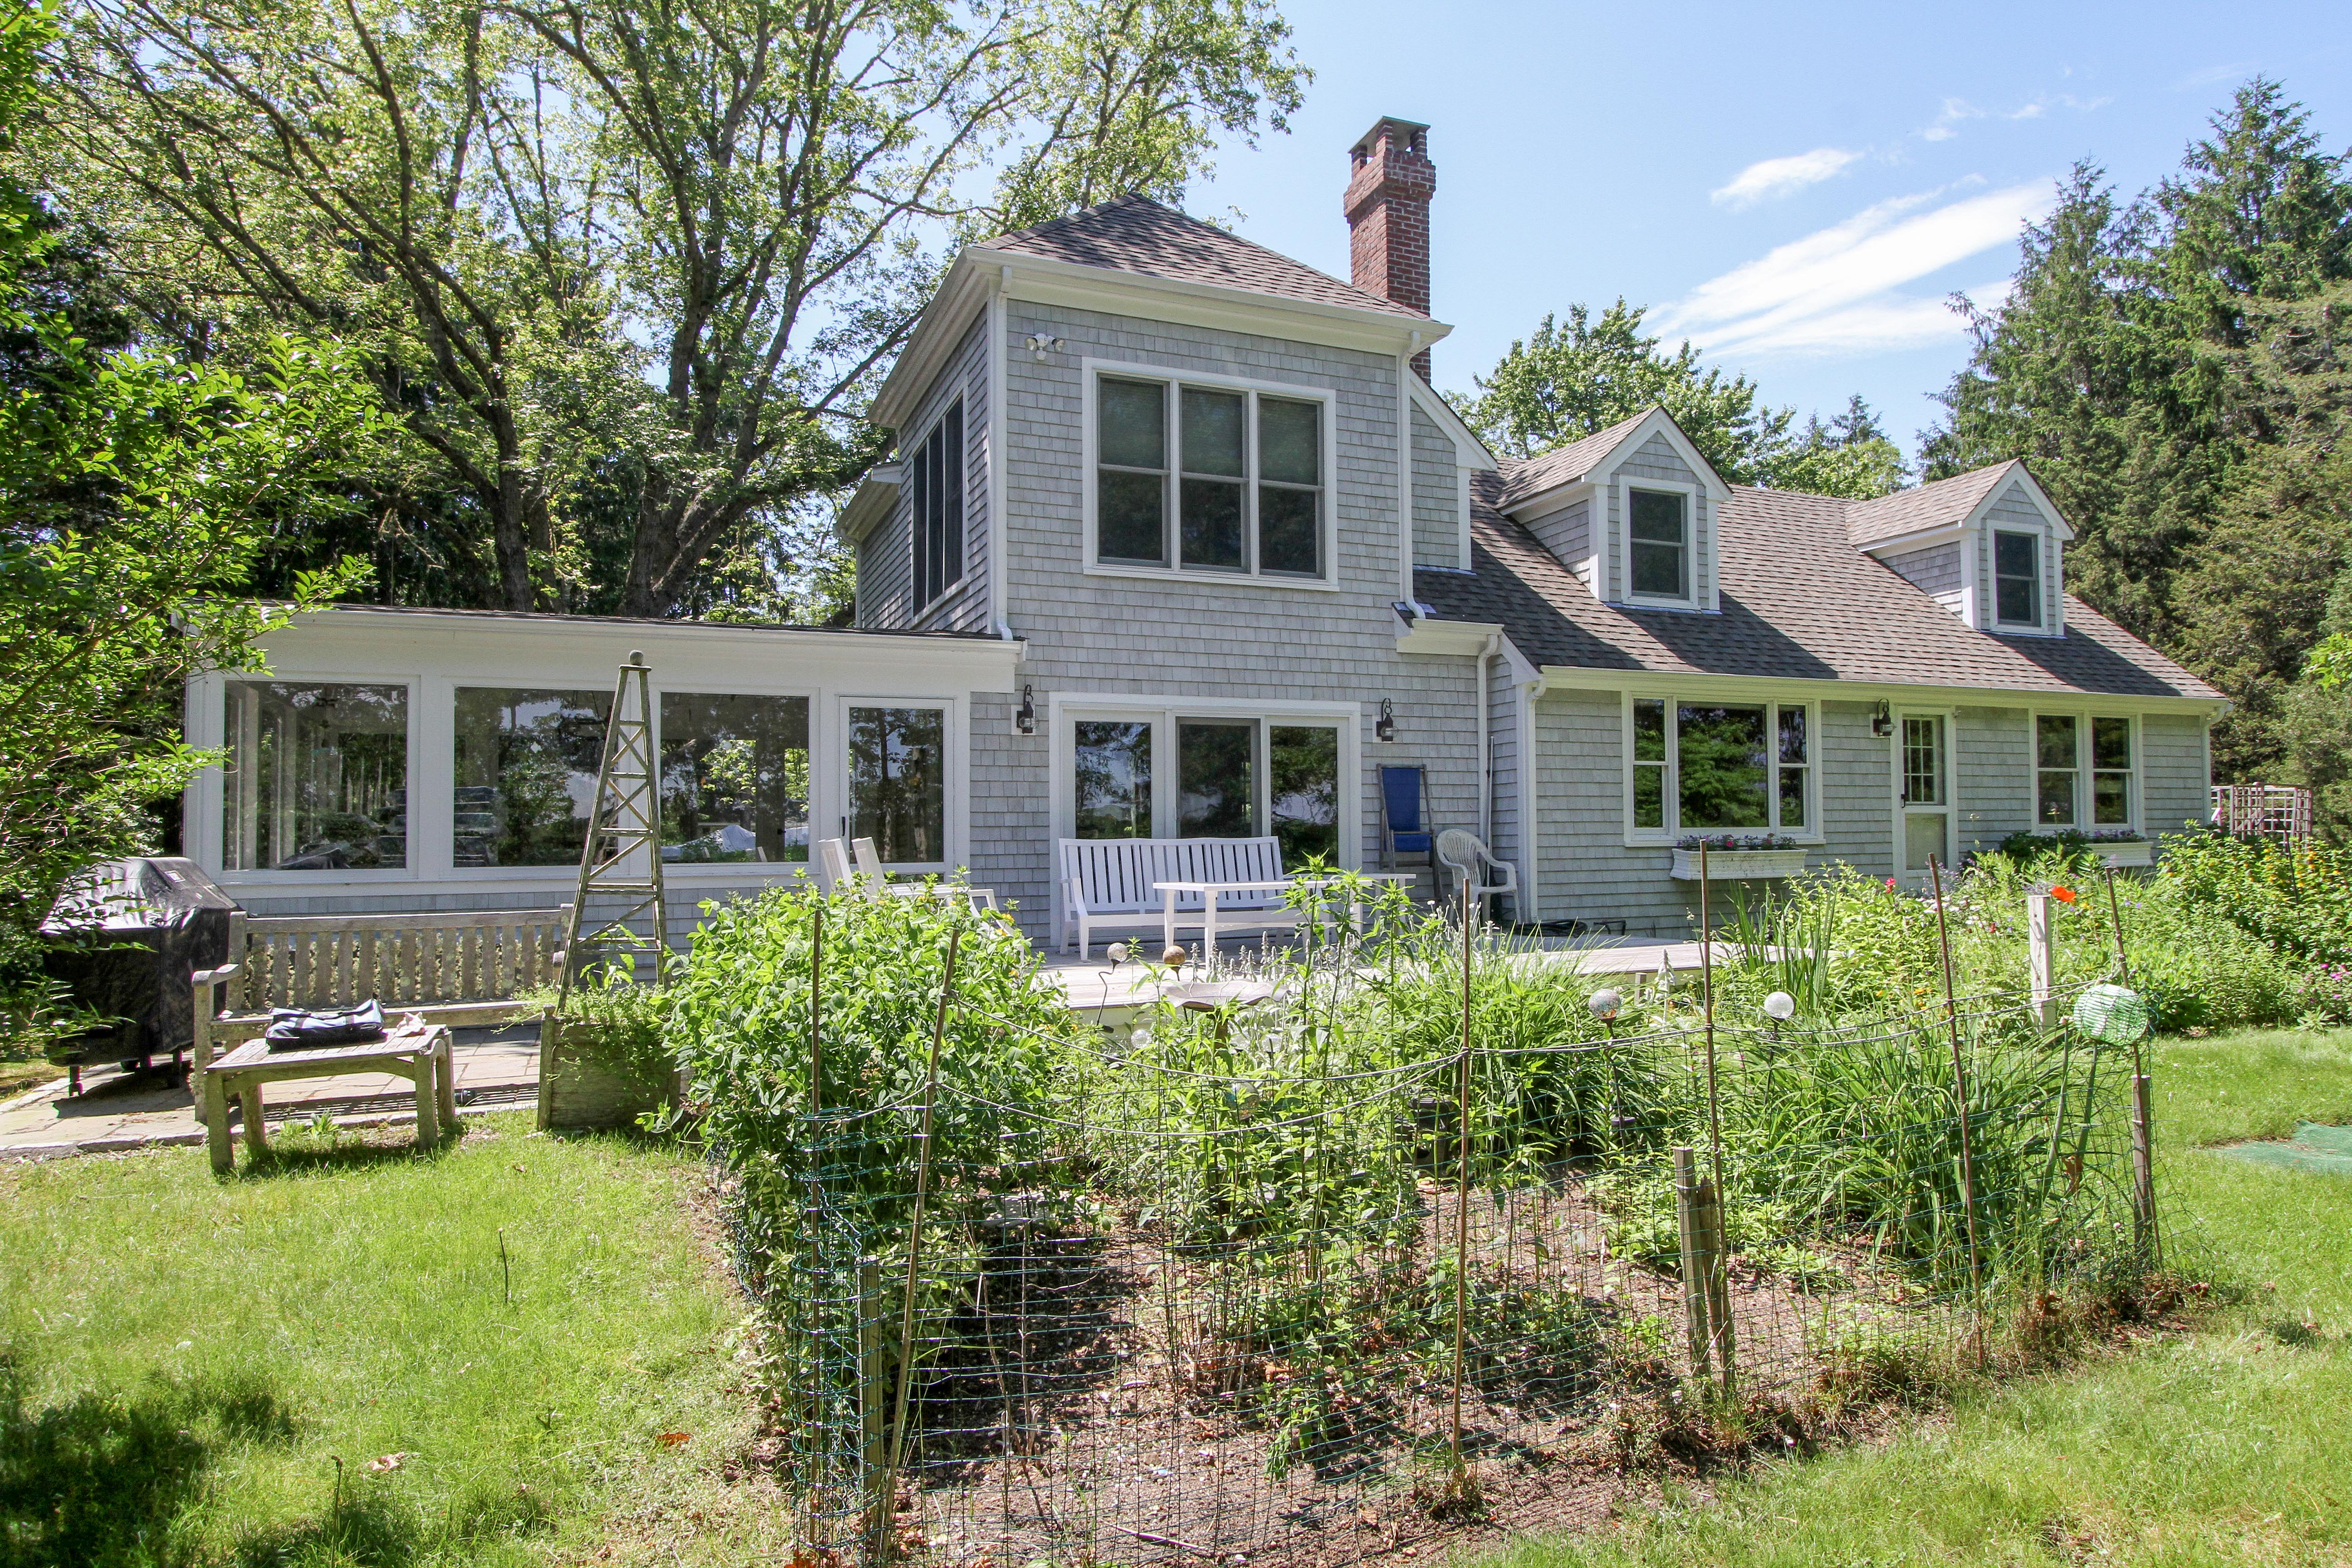 East Falmouth MA Vacation Rental Welcome to East